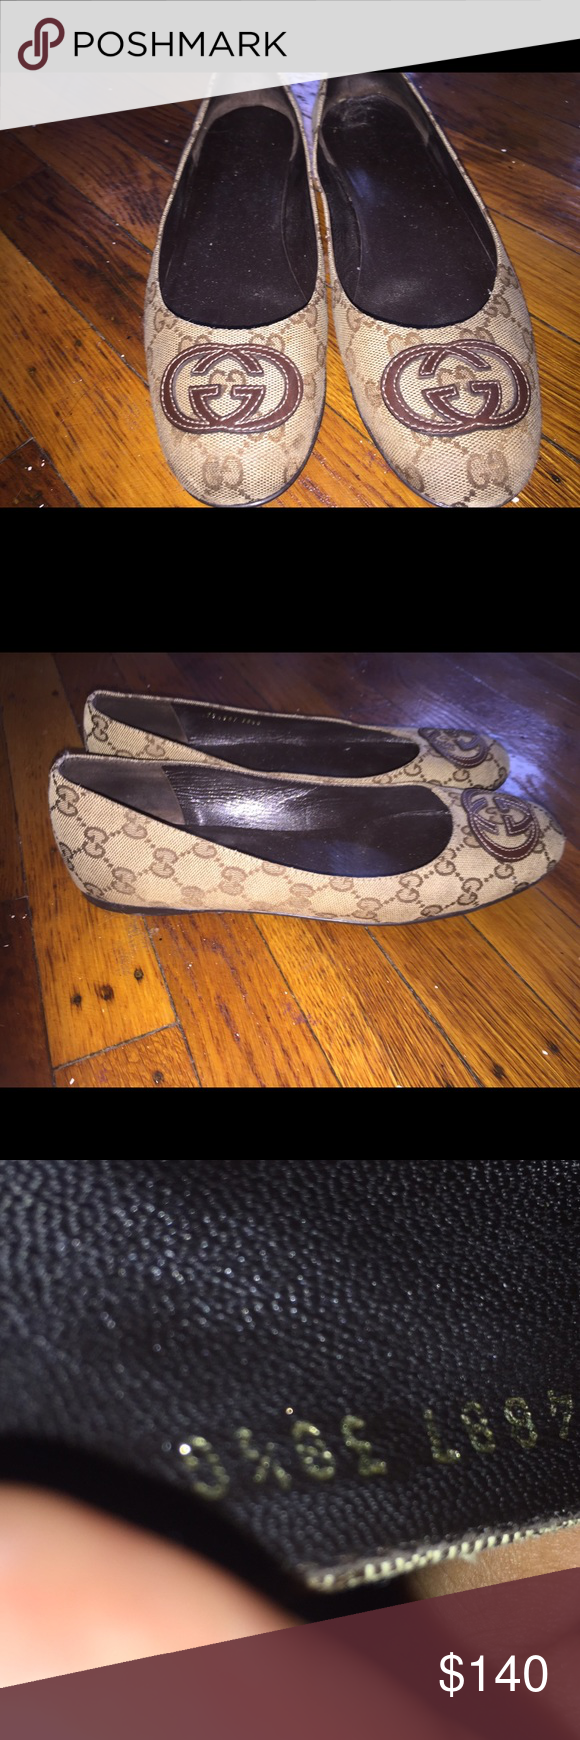 Gucci Double G Logo Flats Beautiful Gucci Flats Like New In Size 381/2 .. No Box ... Gucci Shoes Flats & Loafers